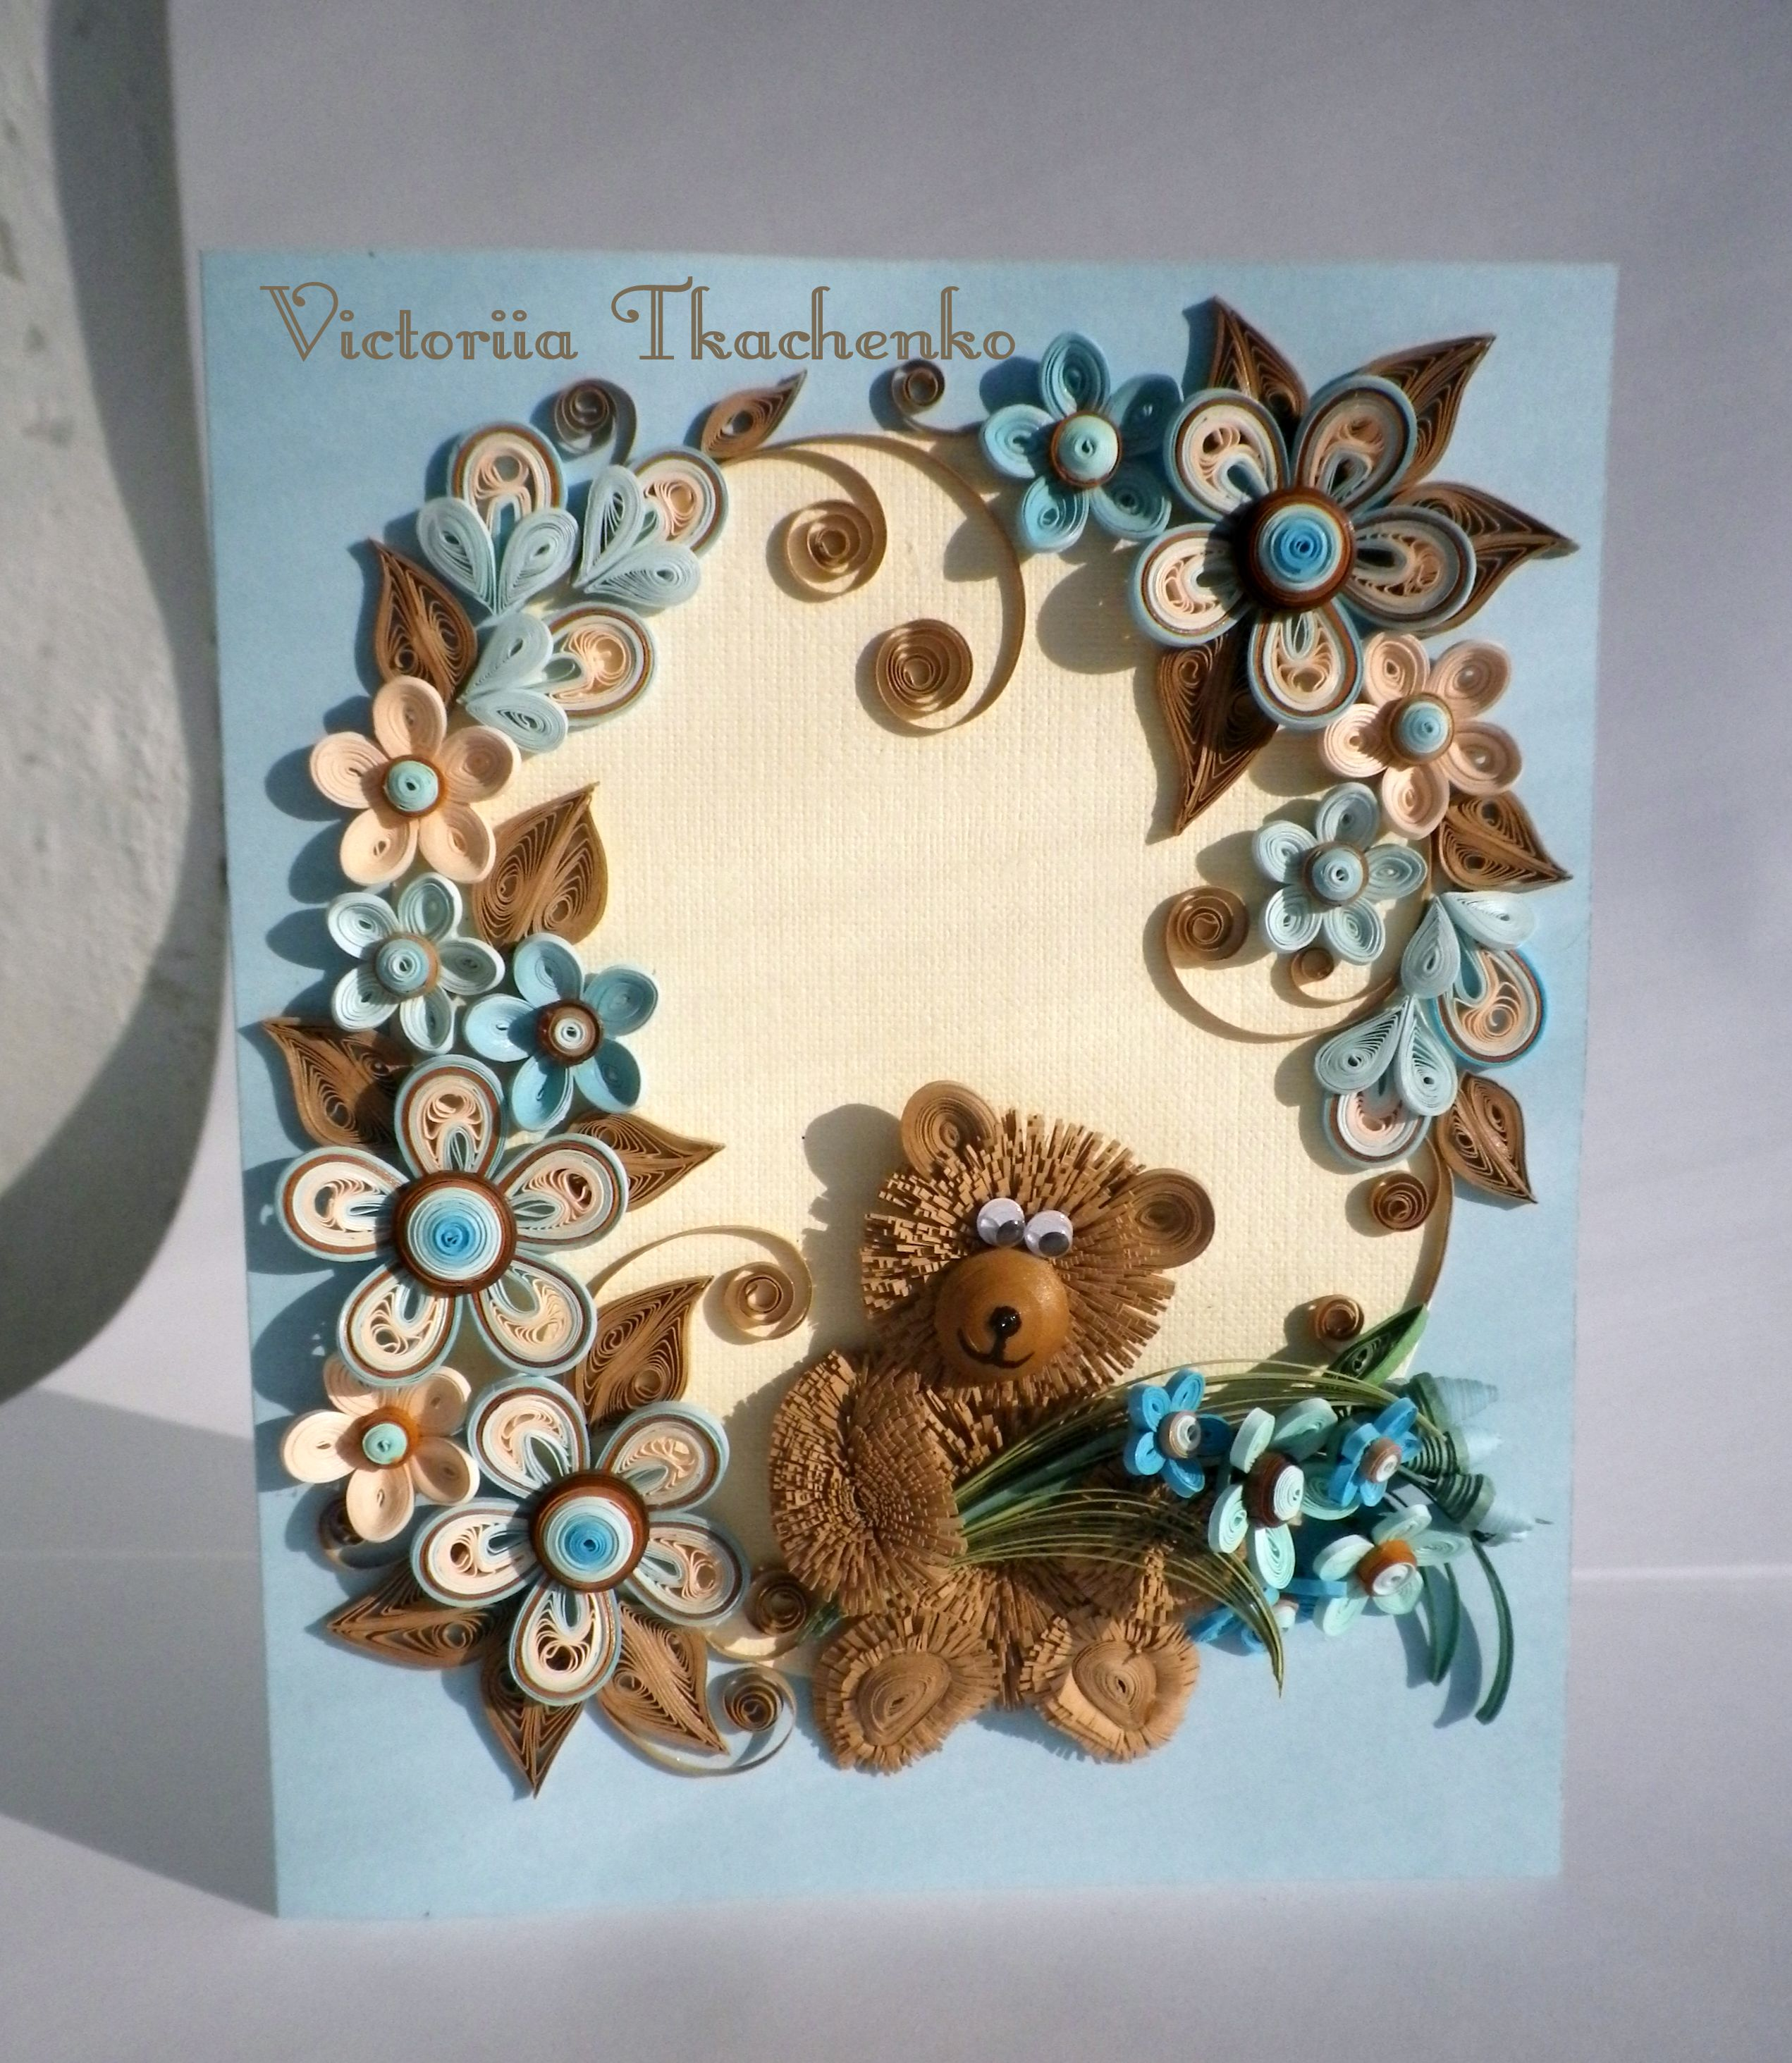 Greeting card made in quilling technique with cute bear ornate with folowers in blue and brown colors.